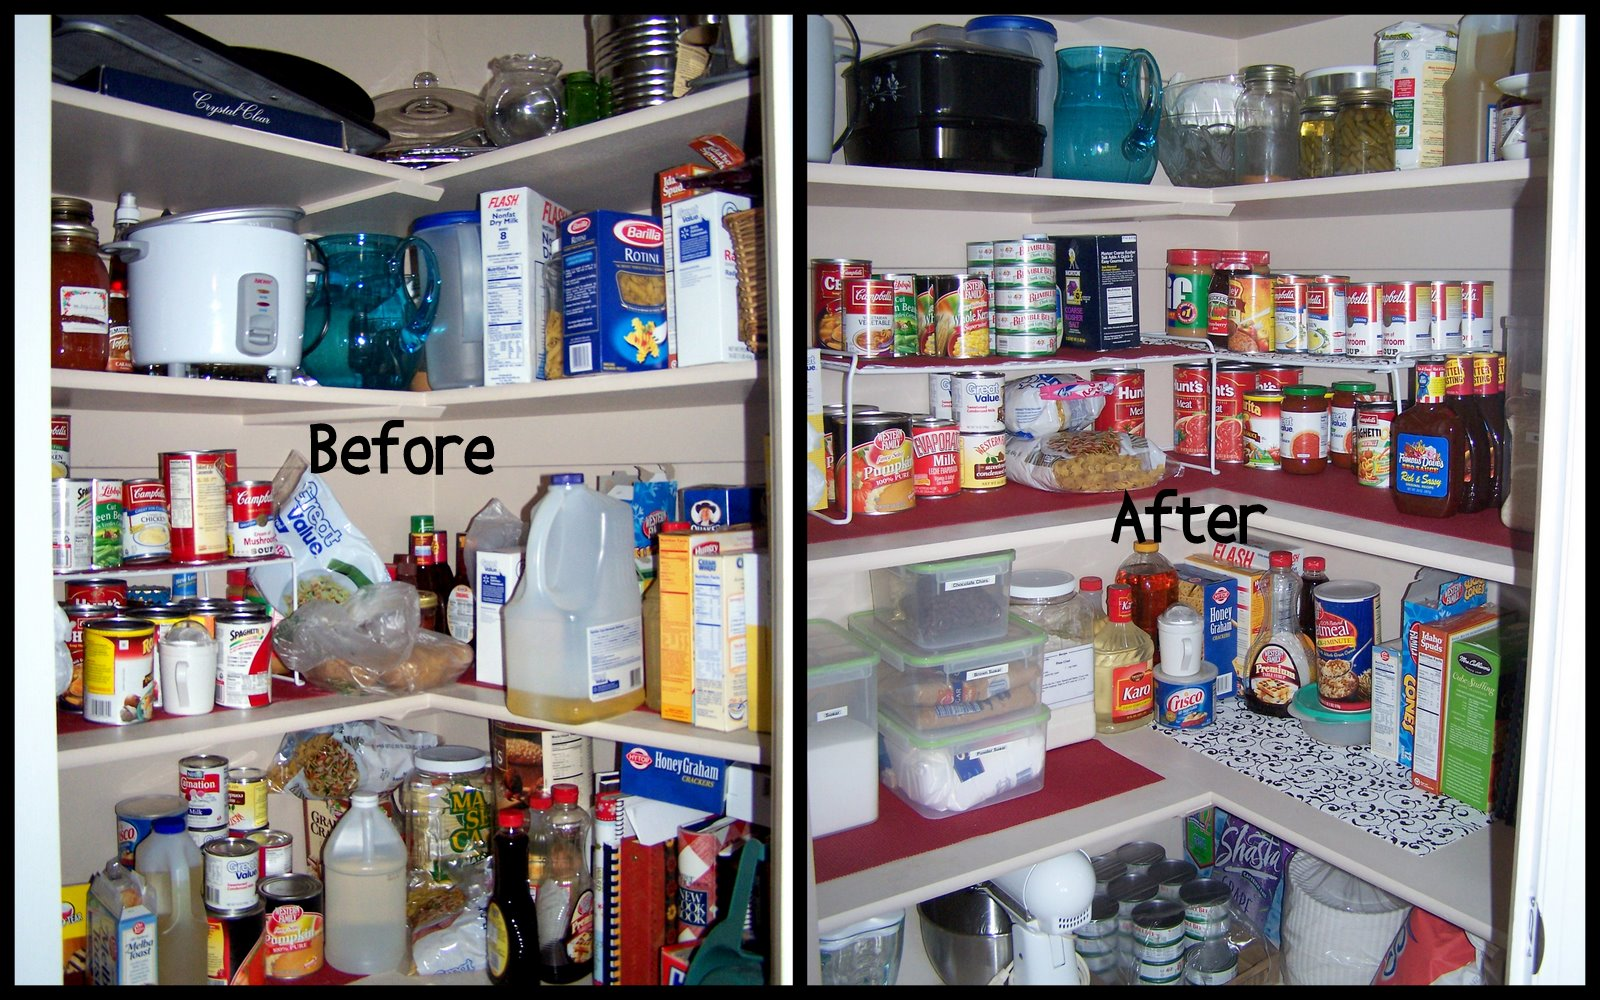 Below are just a few items that were taking up space in my pantry. My